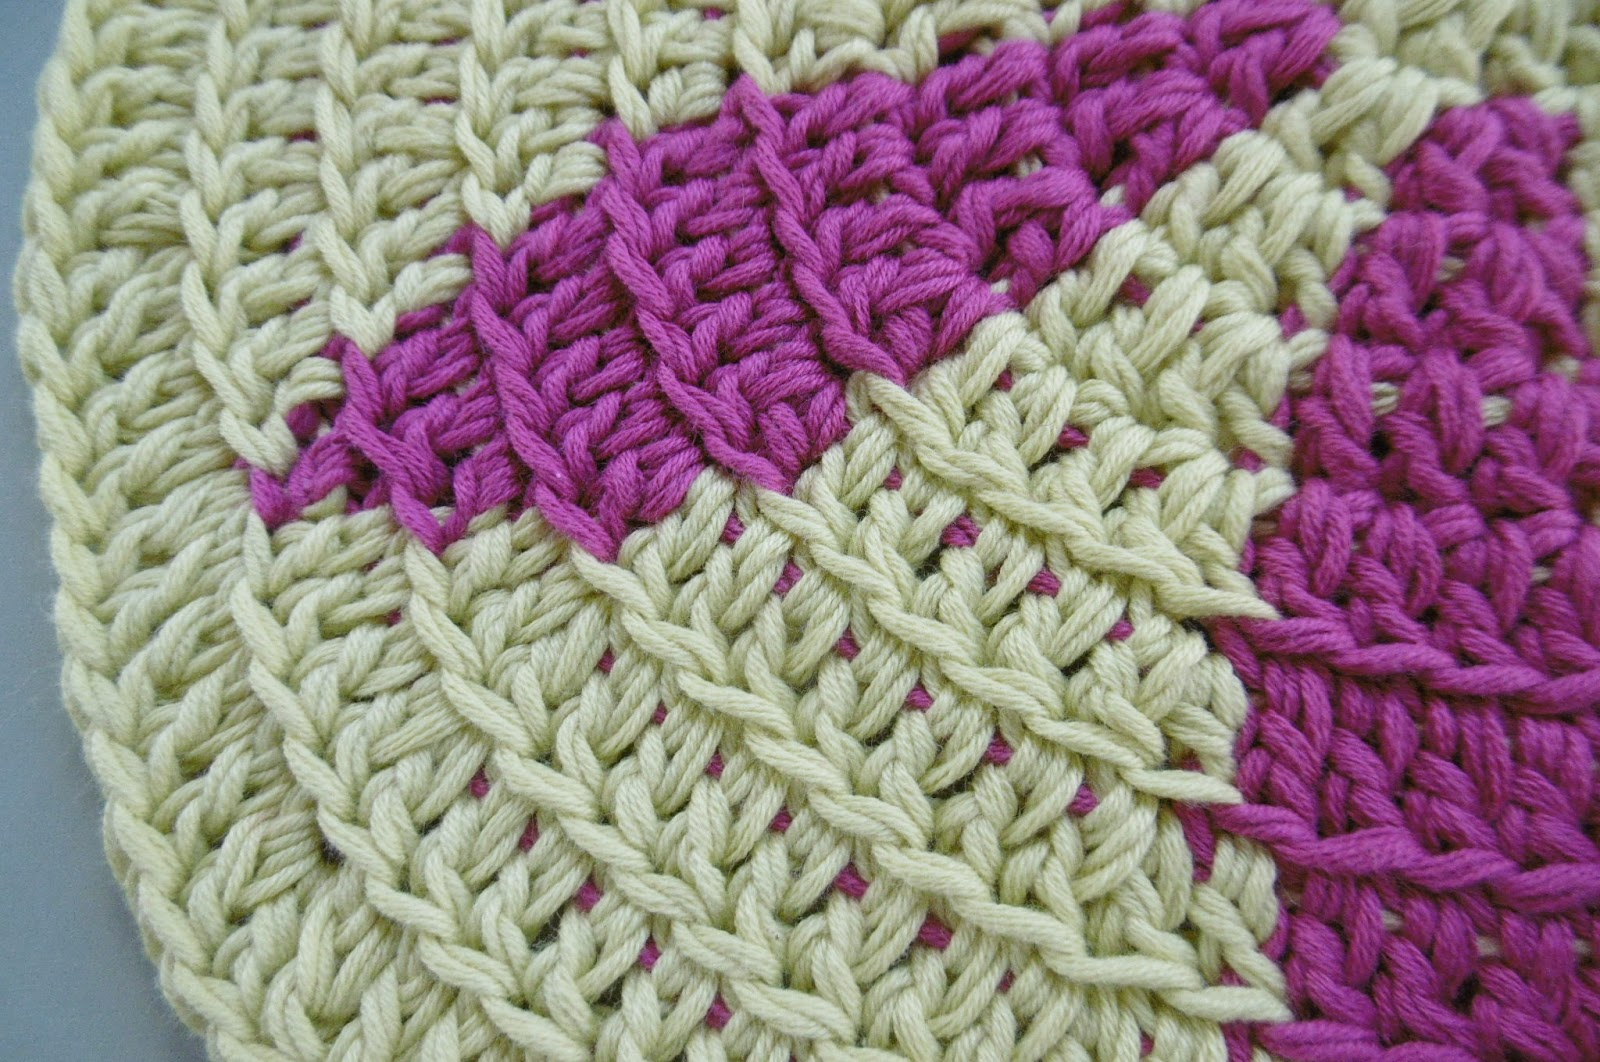 Crochet Stitches Variations : Susan Pinner: CROCHET: Tapestry Stitch and its variations..